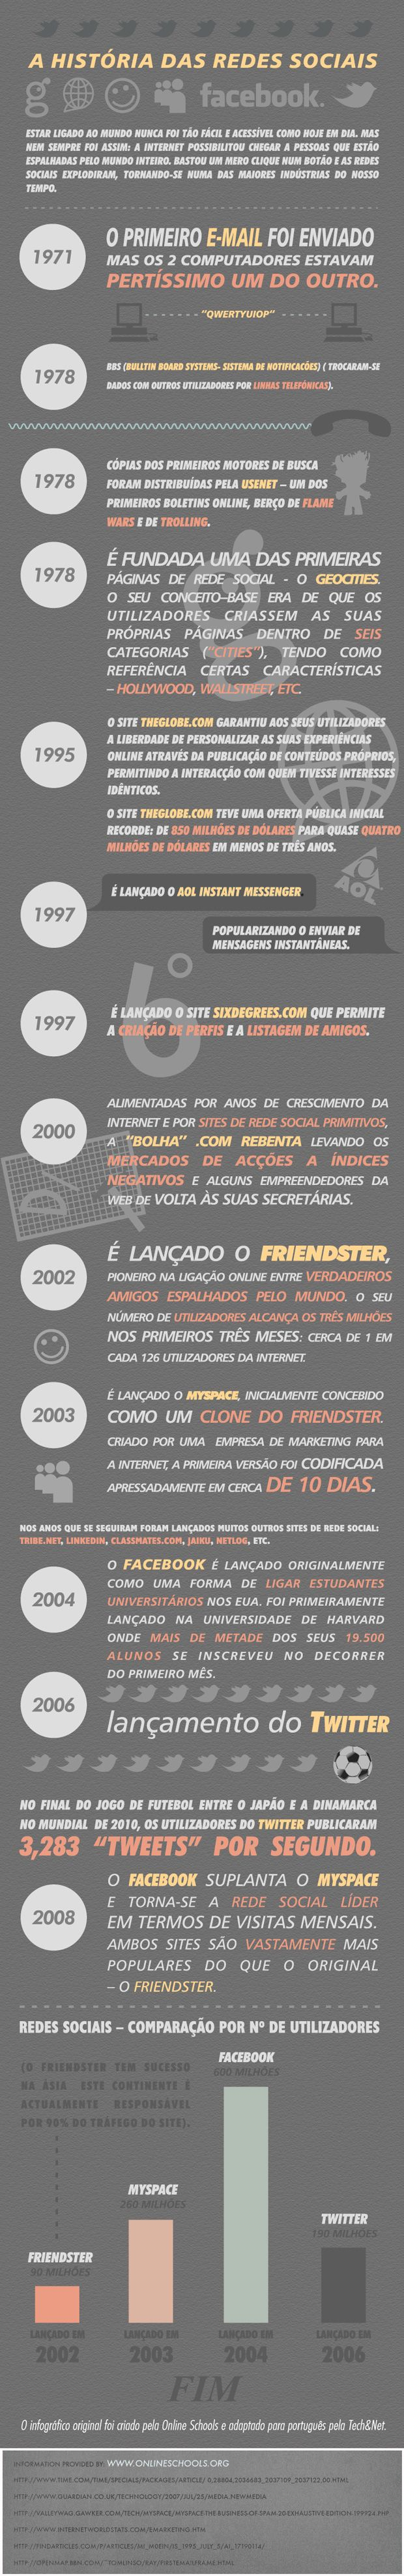 THE HISTORY OF SOCIAL NETWORK (História das Redes Sociais)